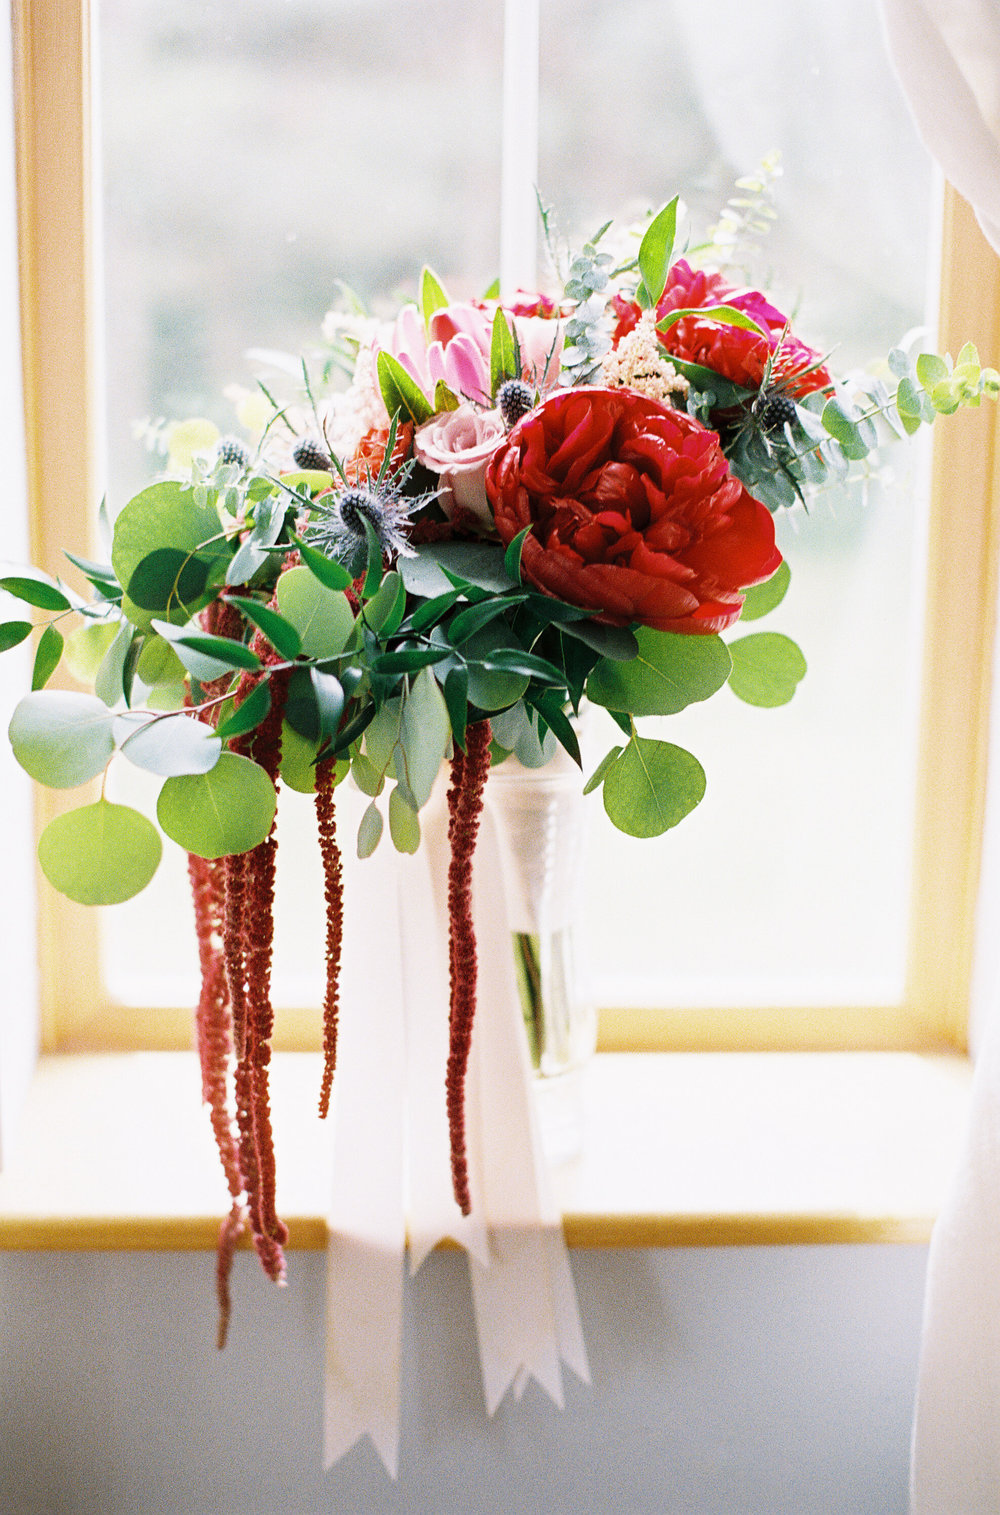 One of the most beautiful bouquets I've ever seen.